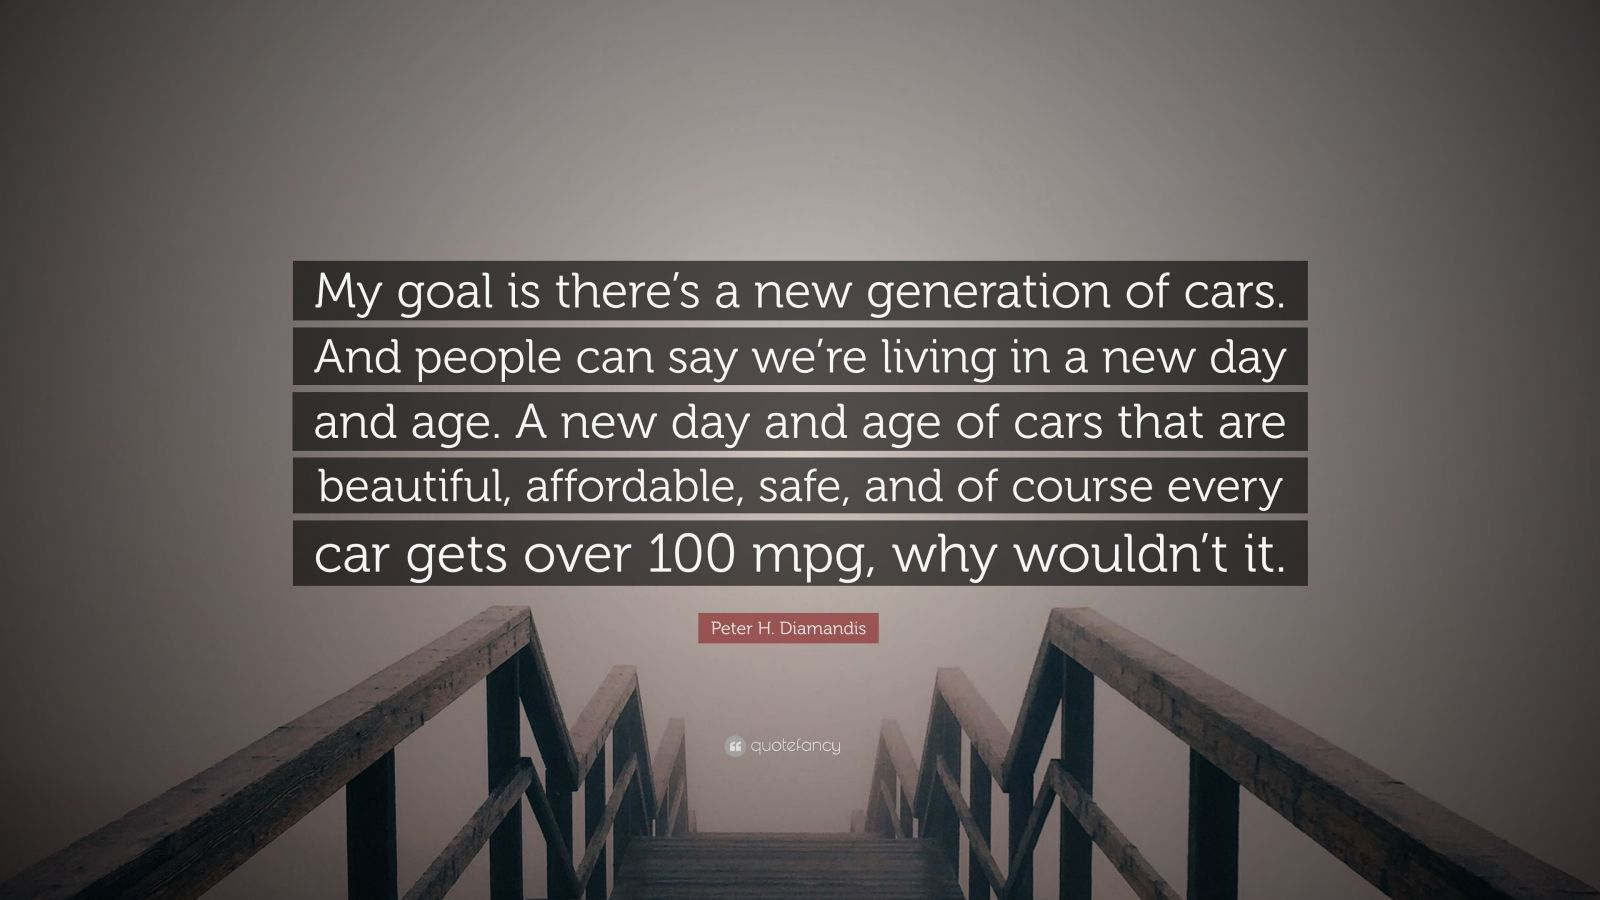 """Peter H. Diamandis Quote: """"My goal is there's a new generation of cars. And people can say we're living in a new day and age. A new day and age of cars that are beautiful, affordable, safe, and of course every car gets over 100 mpg, why wouldn't it."""""""